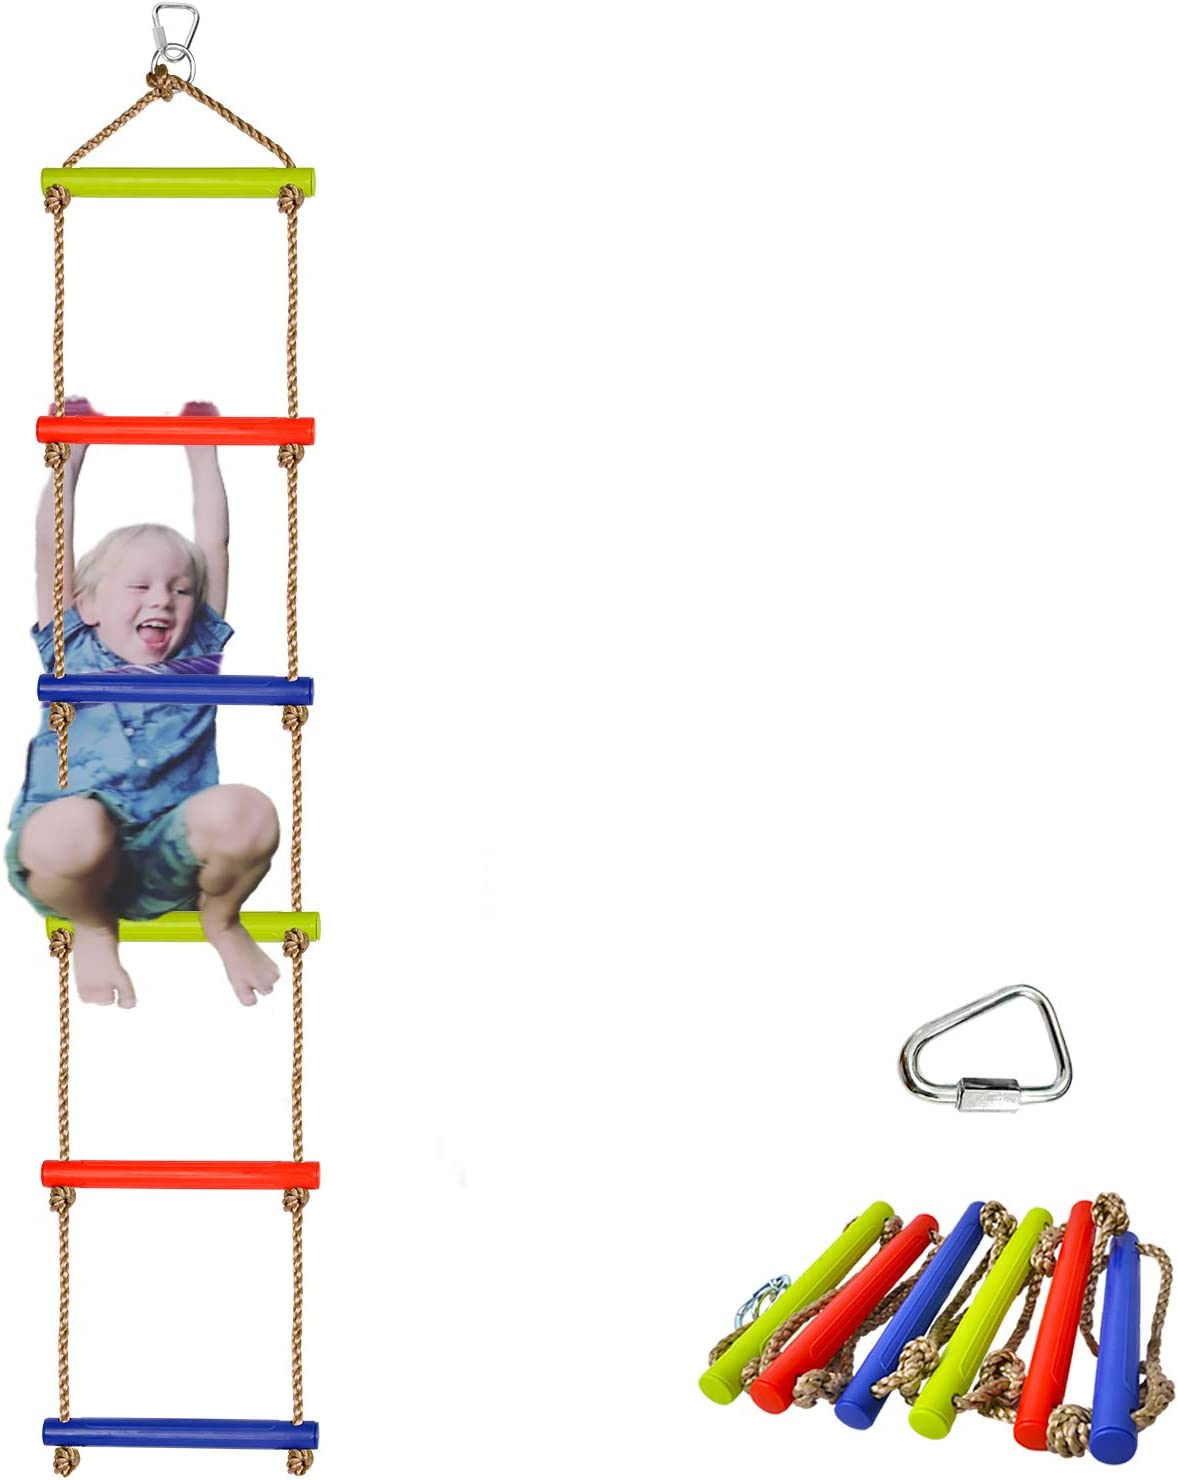 Winslow&Ross Ninja Warrior Climbing Rope Ladder for Kids - High Duty Kid Obstacle Course Slackline Accessories Backyard Playground - Ninja Lines Ladder, Ninja Swing Rope Ladders with 6 Bars